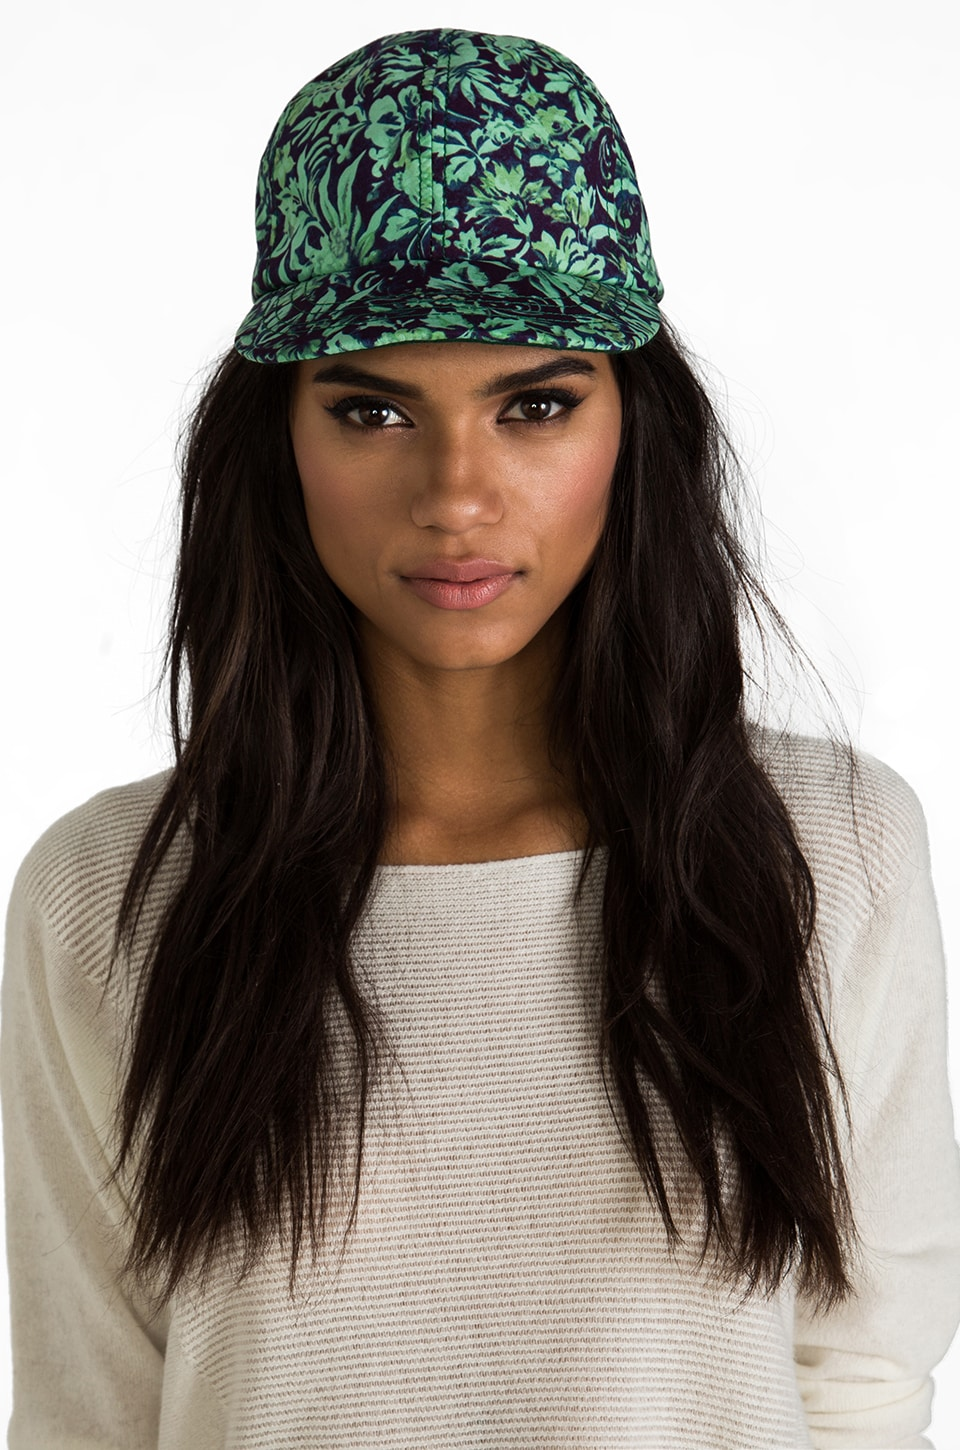 Rachel Antonoff Devonte Cap in Backyard Print